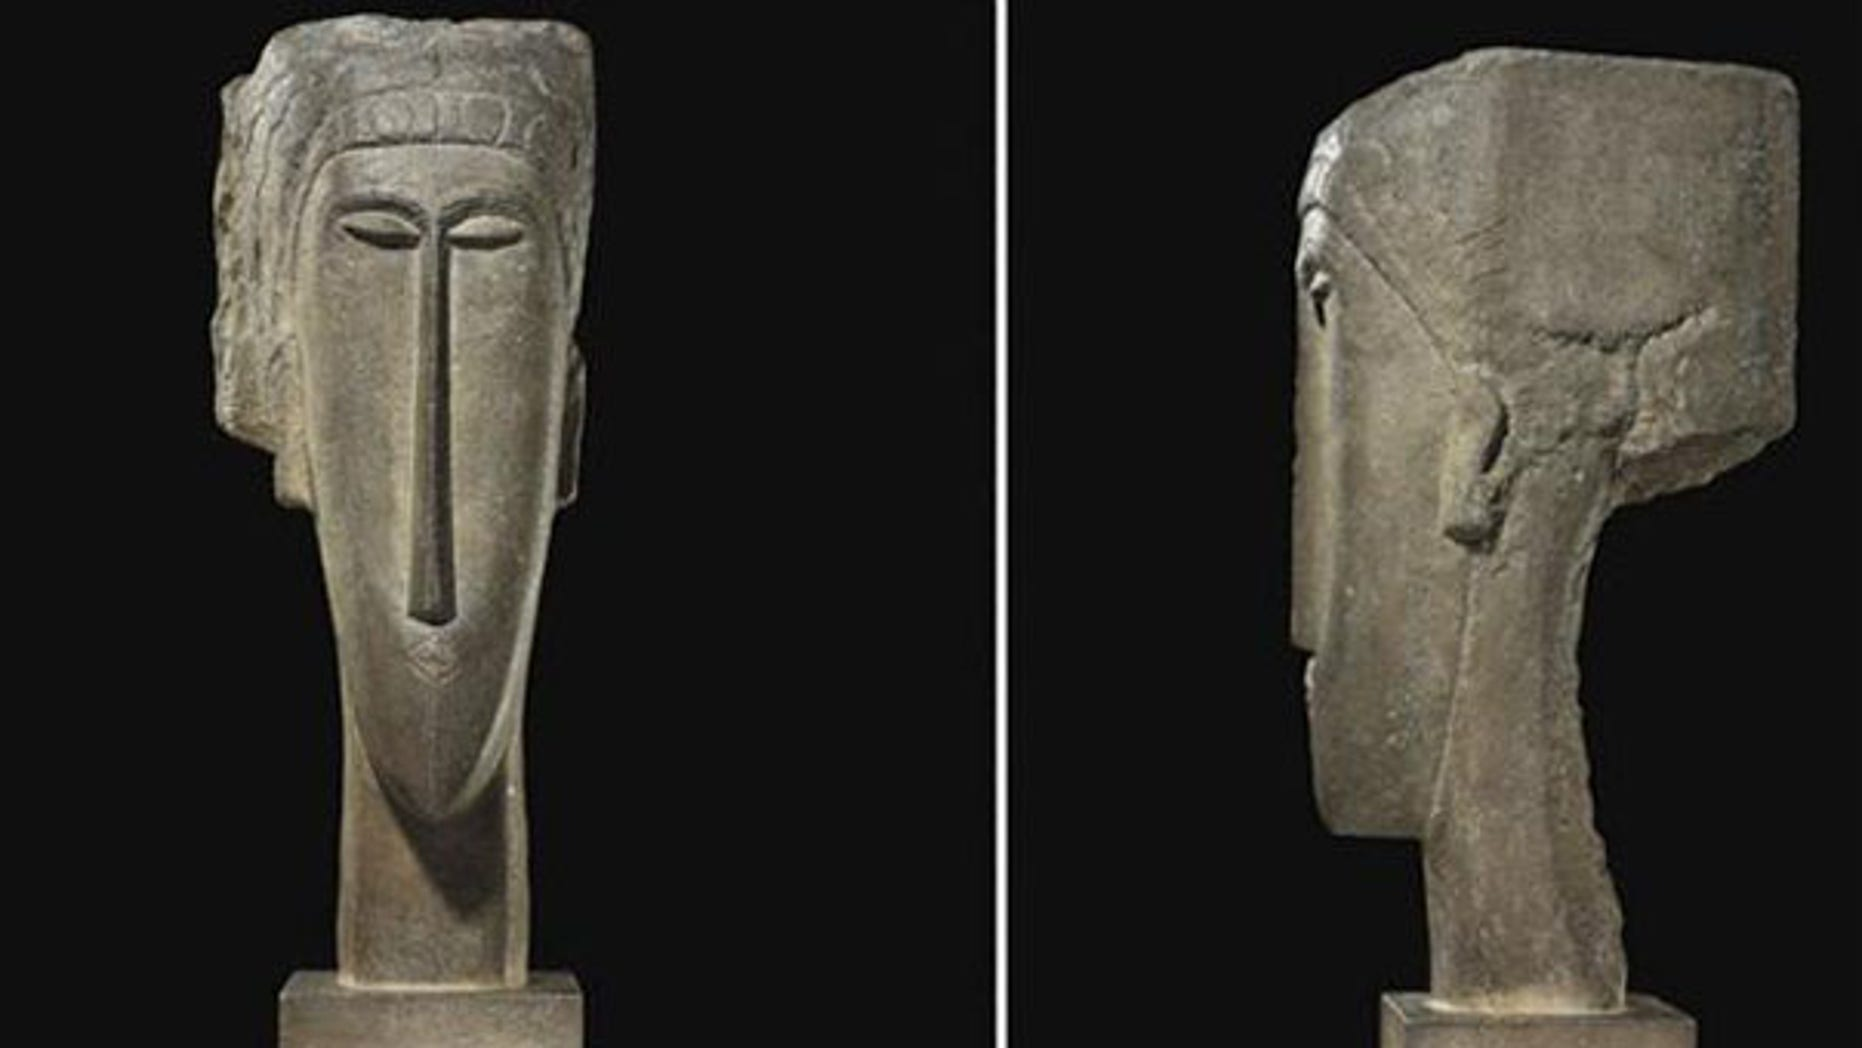 The stone sculpture 'Tete' by artist Amedeo Modigliani has sold for a record $52.8 million at auction in Paris.